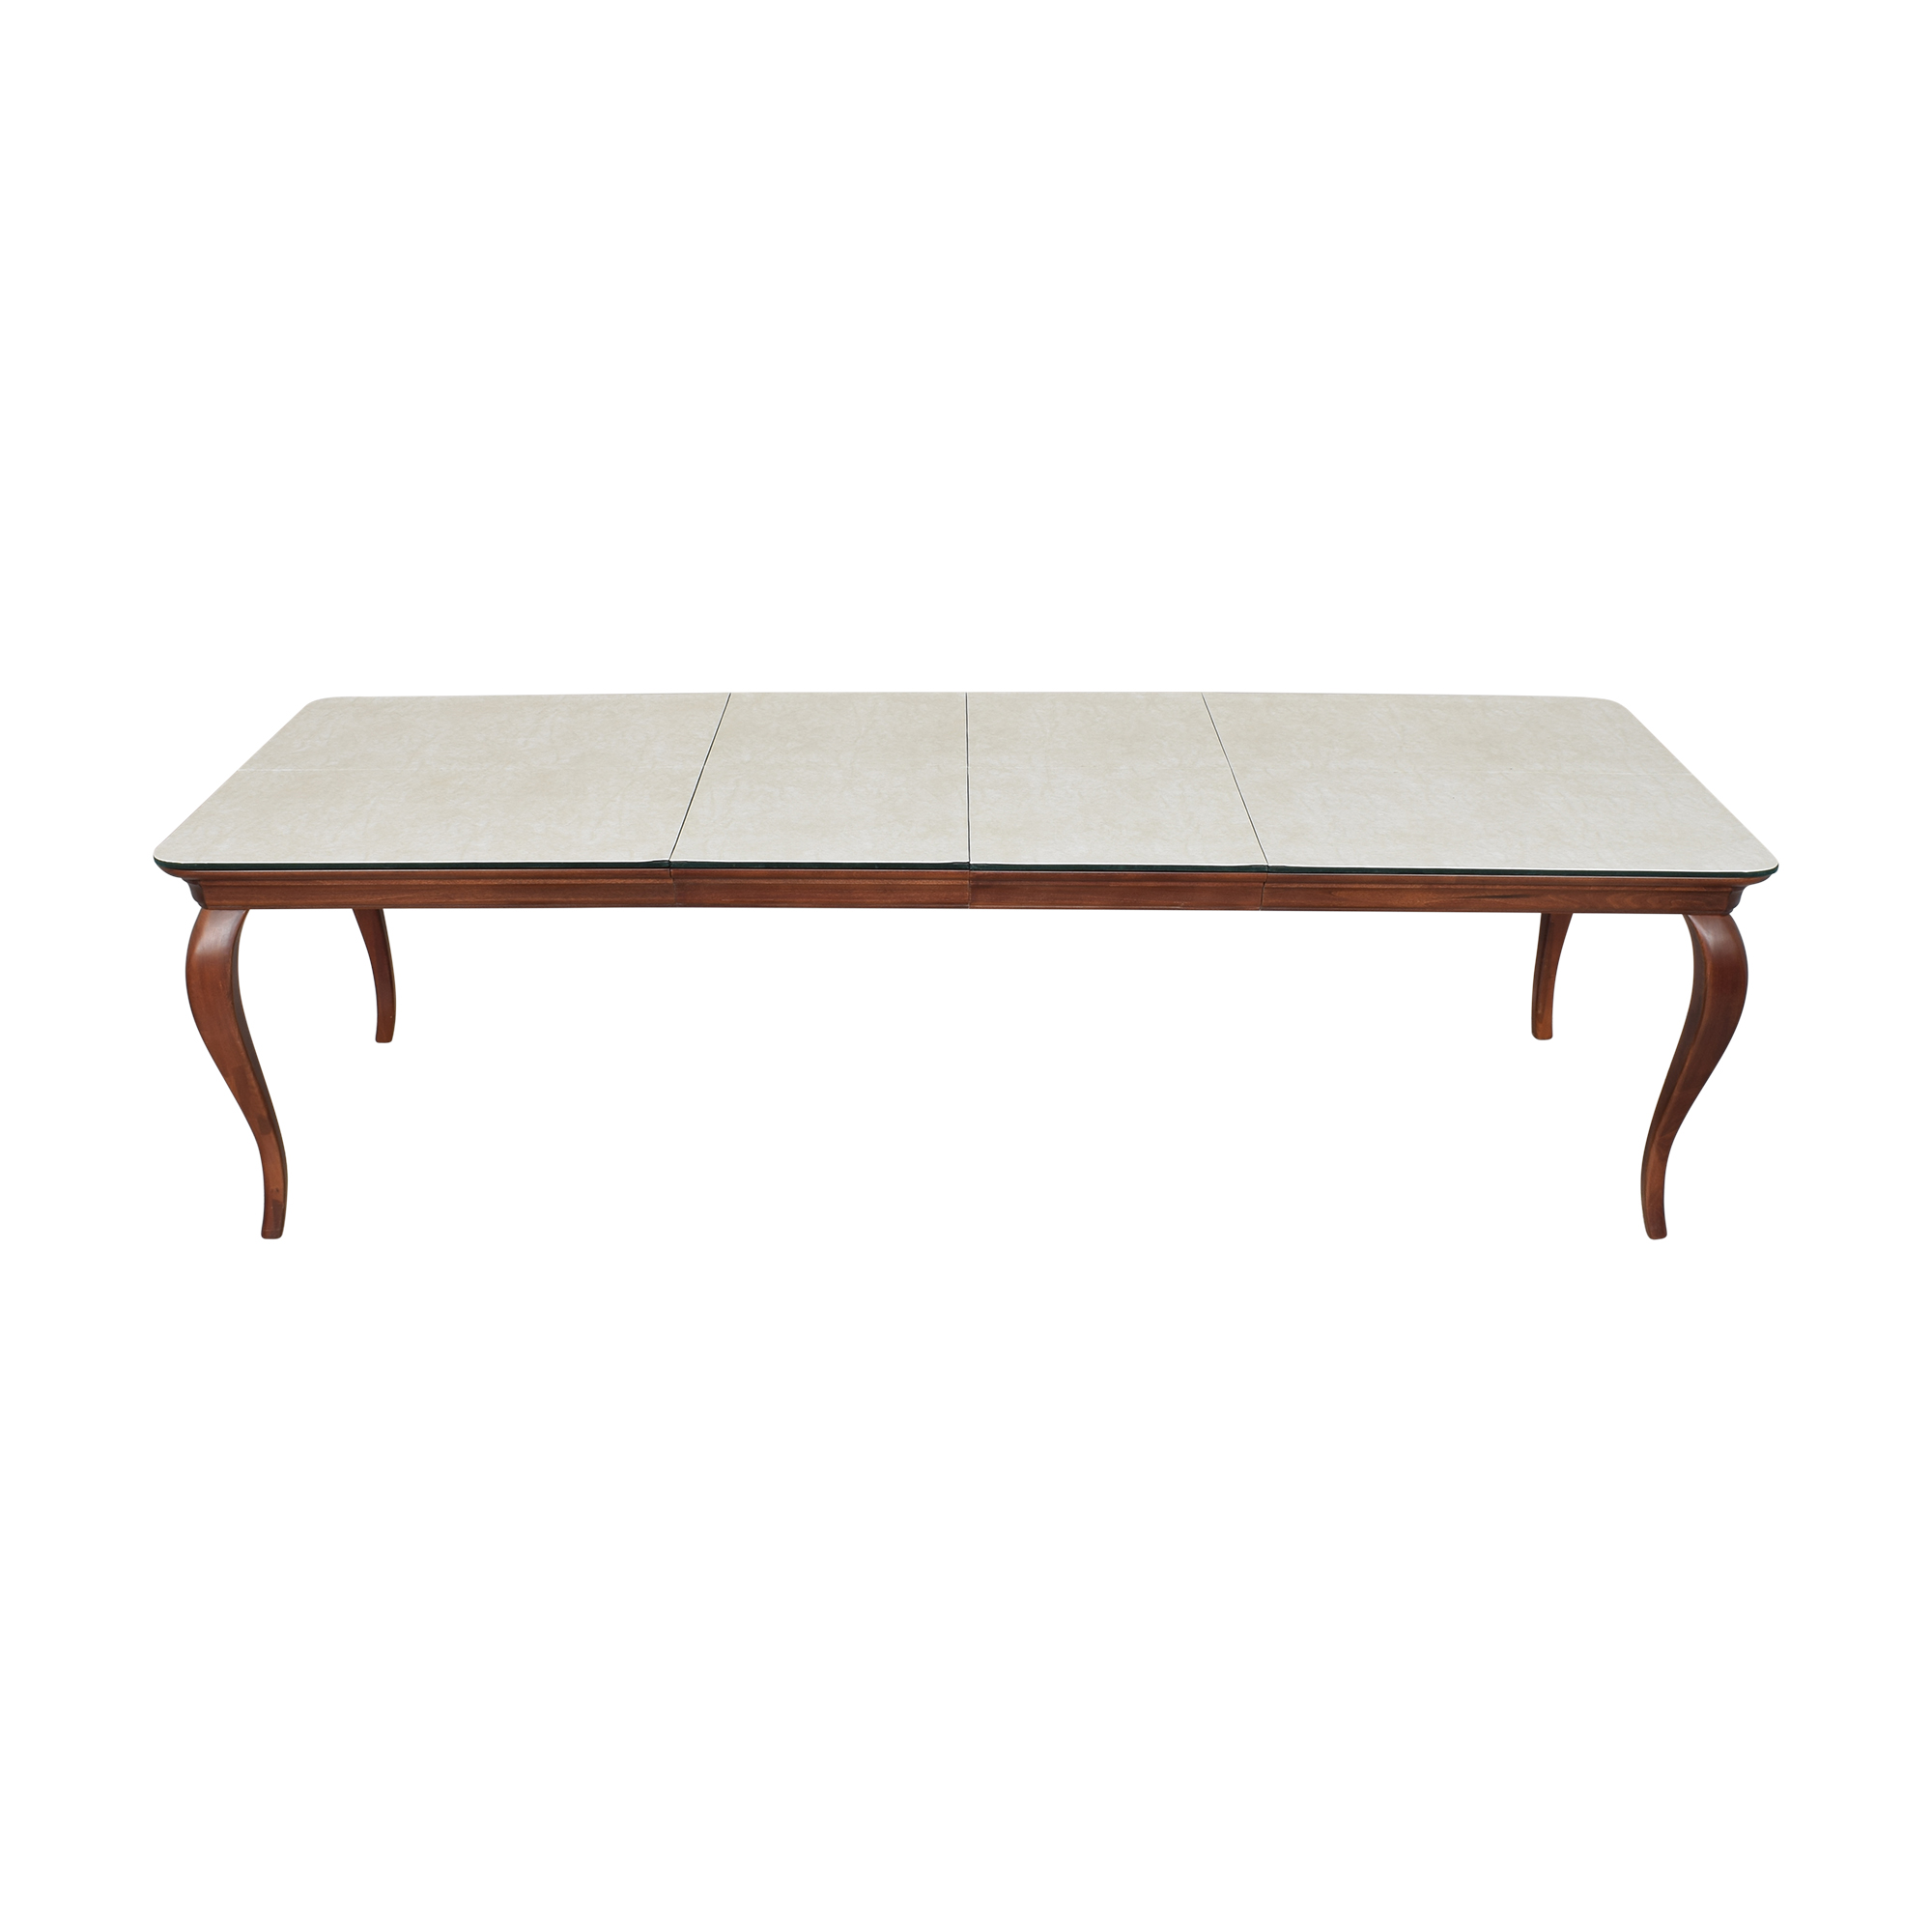 Thomasville Thomasville Extendable Cabriole Dining Table discount